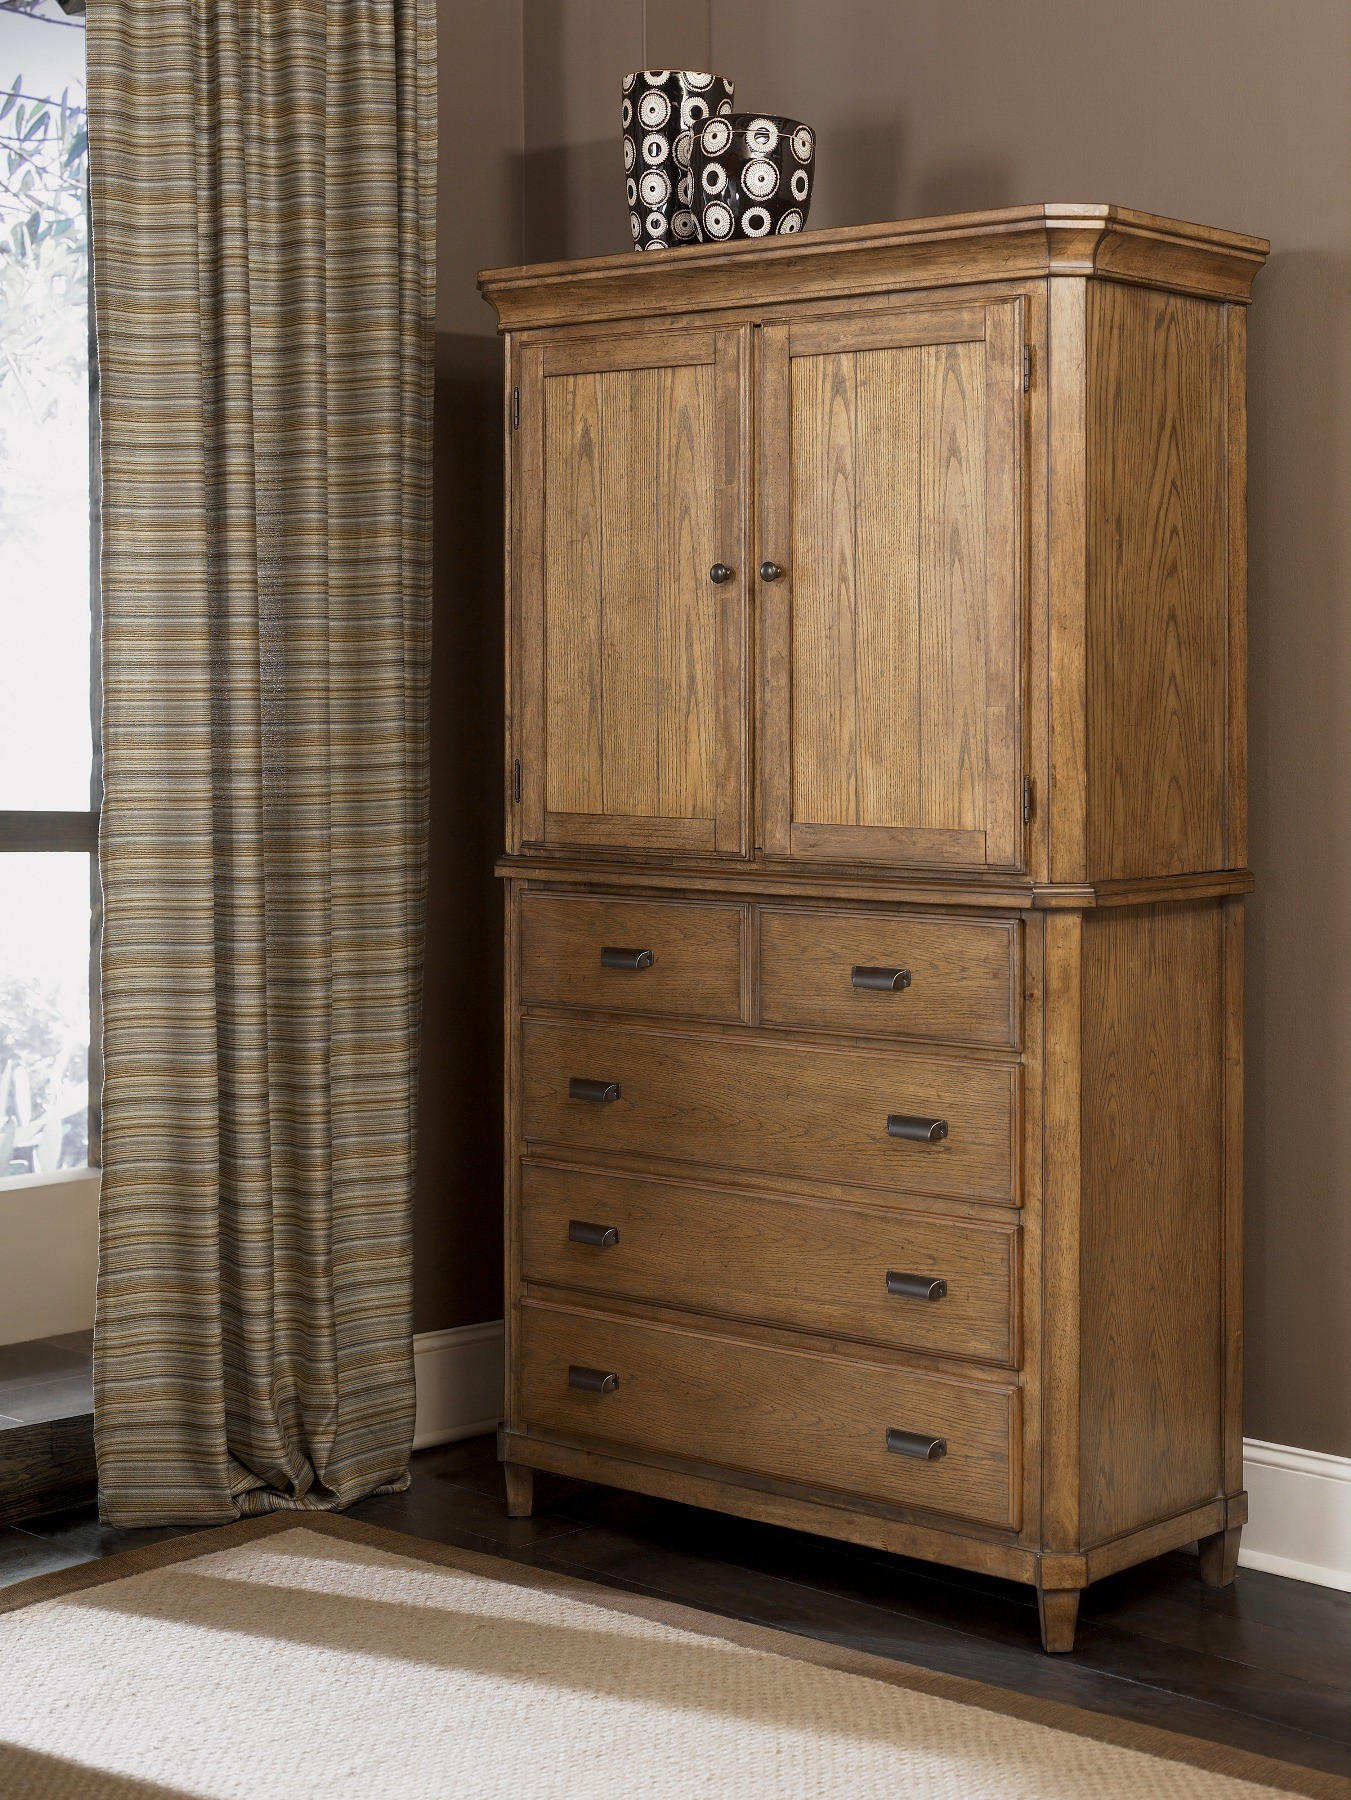 furniture bedroom furniture hutch dresser media hutch. Black Bedroom Furniture Sets. Home Design Ideas